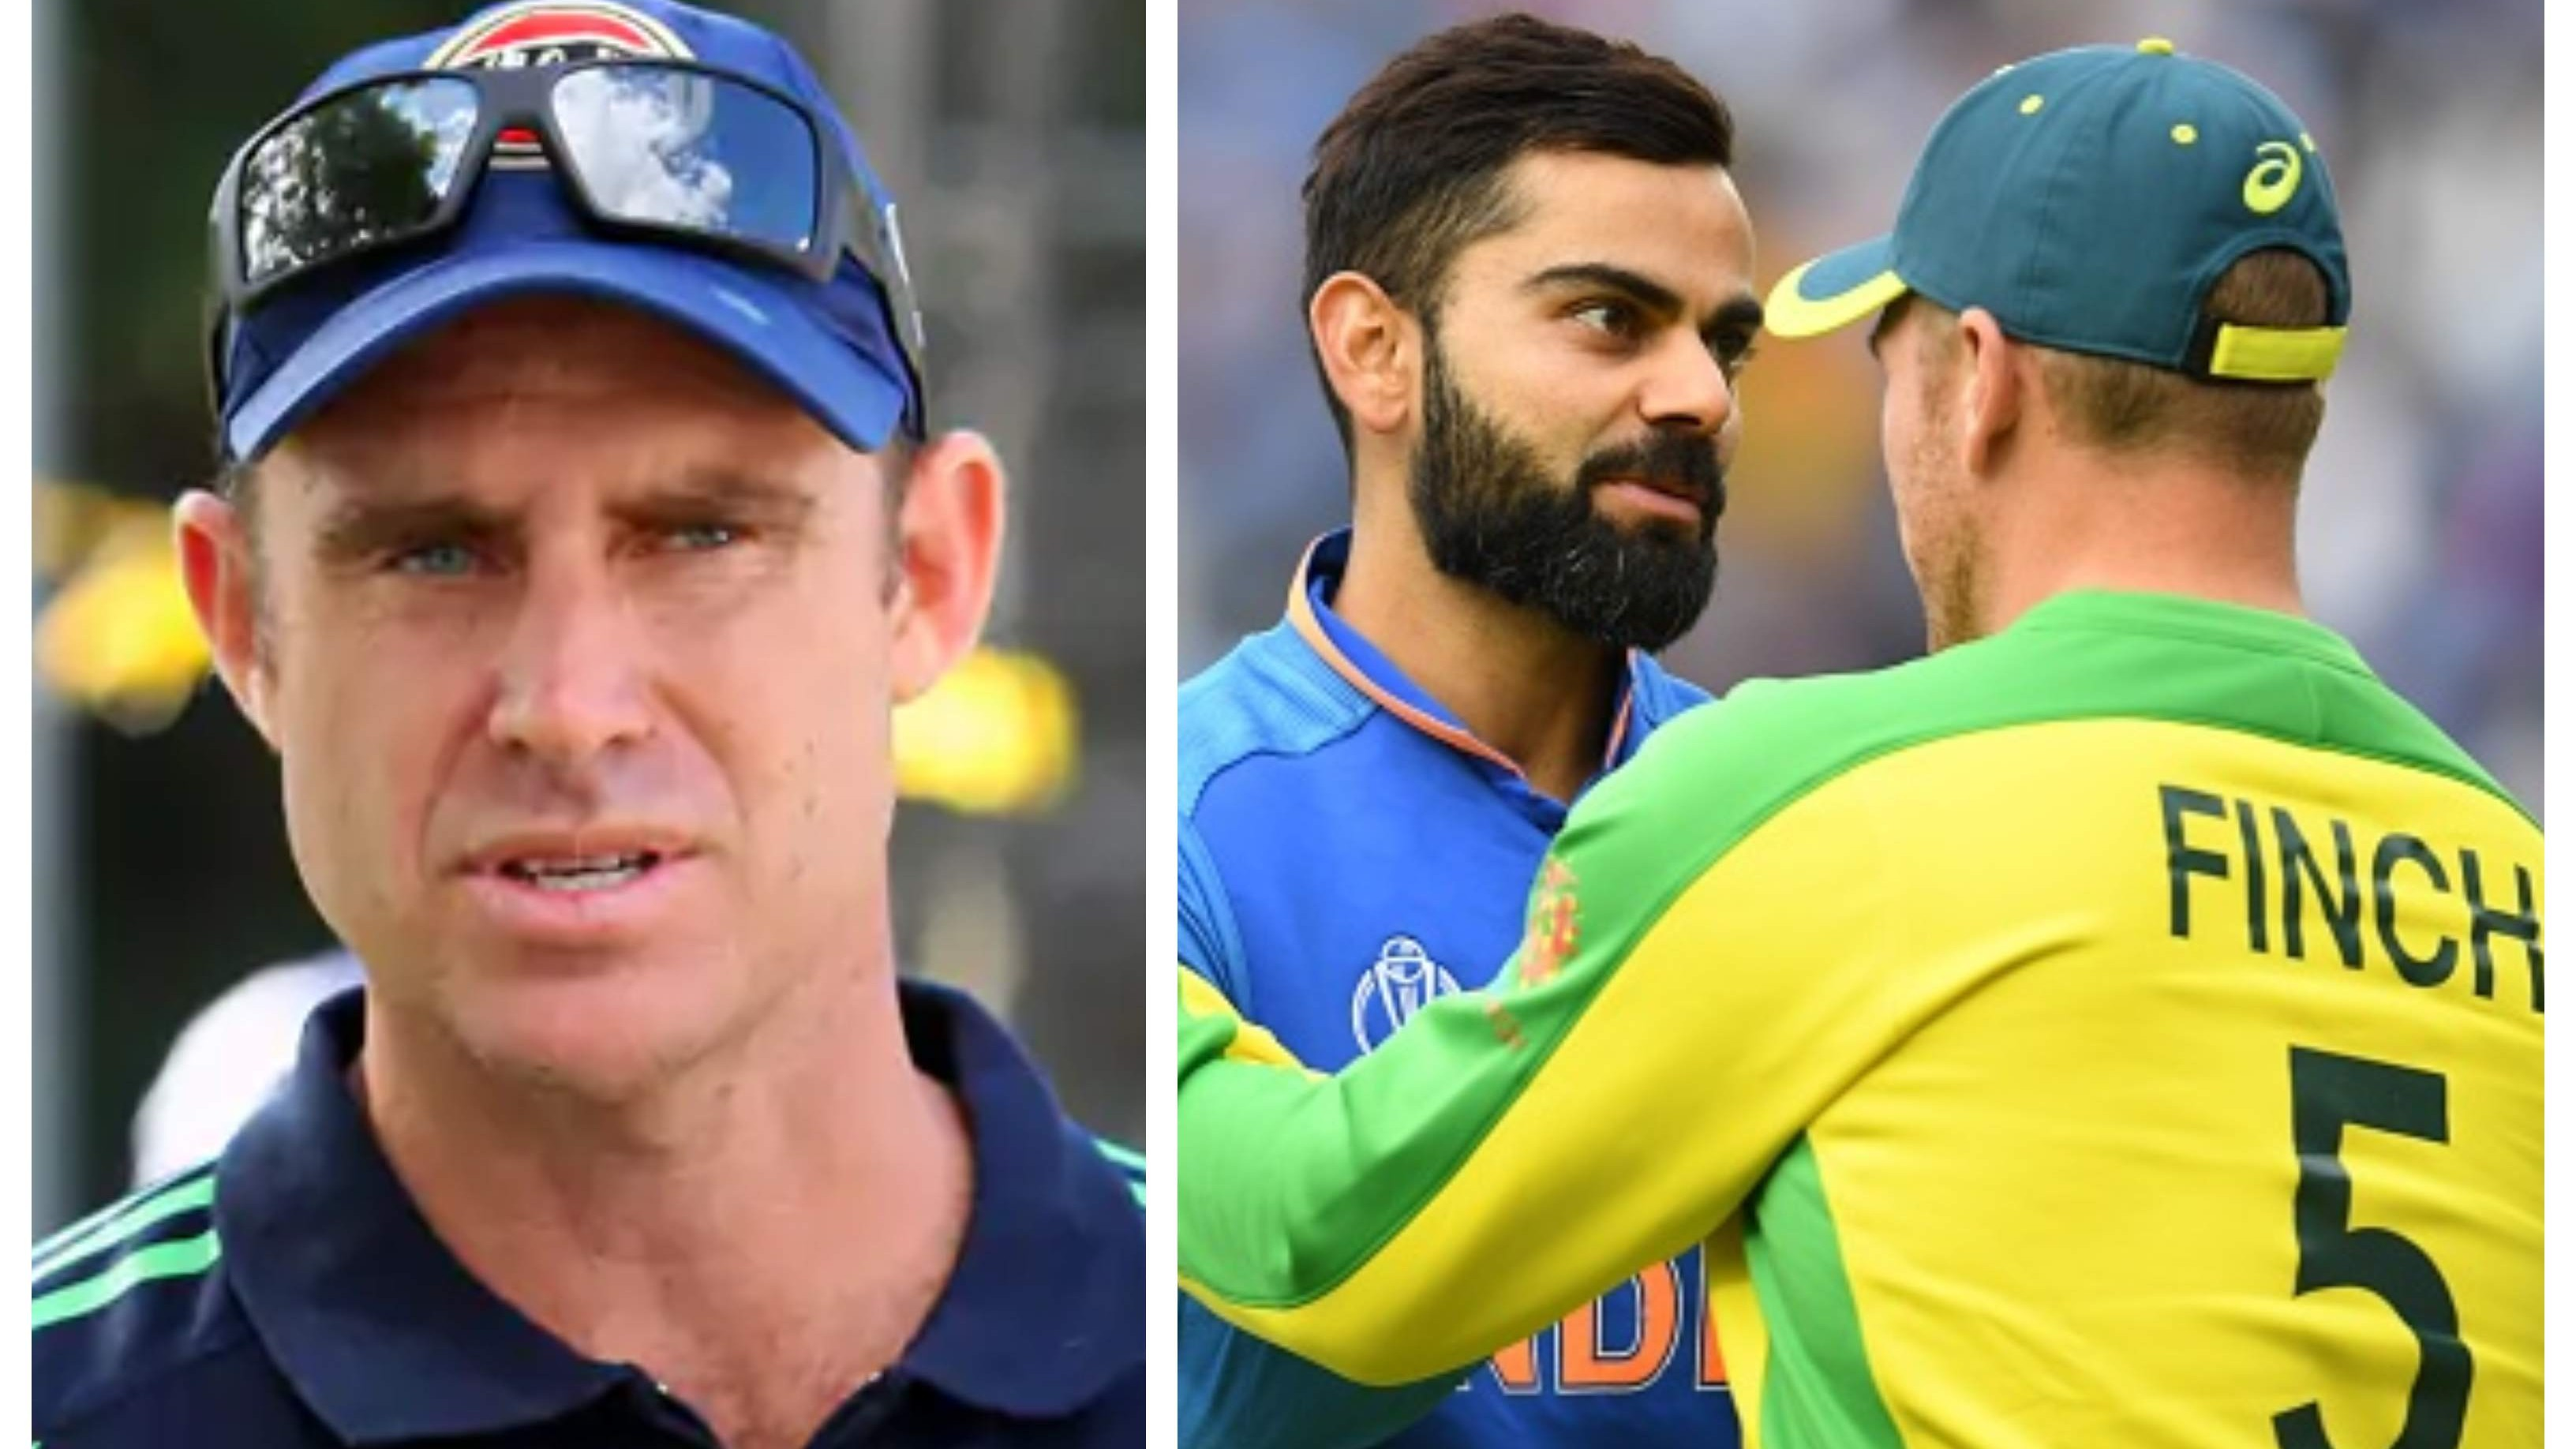 IND v AUS 2020: Matthew Hayden opens up about India-Australia rivalry during the first ODI